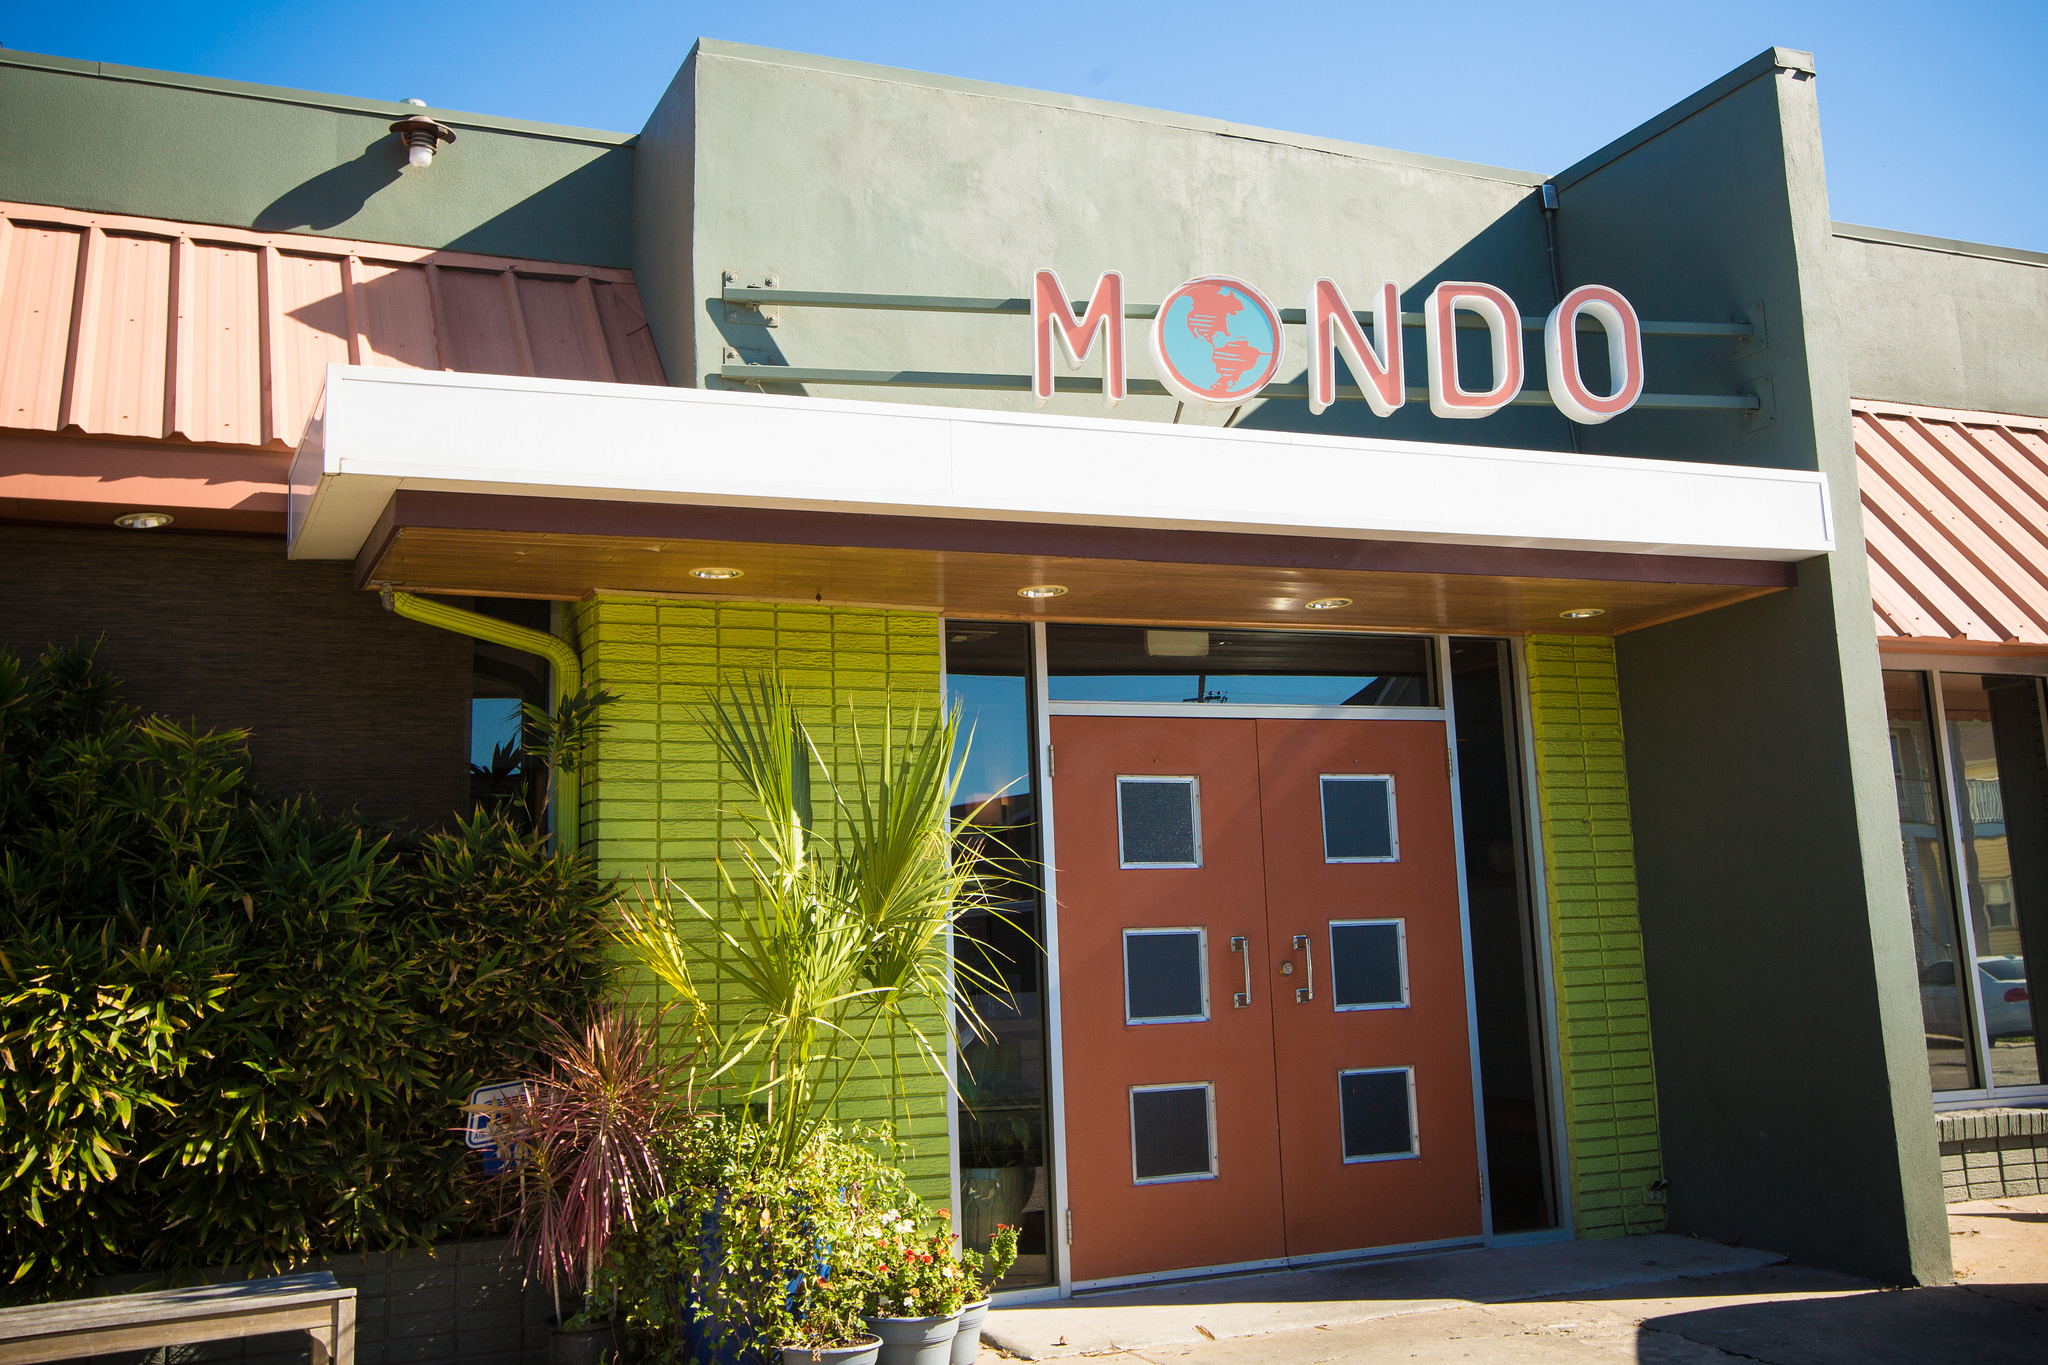 The exterior of Mondo restaurant